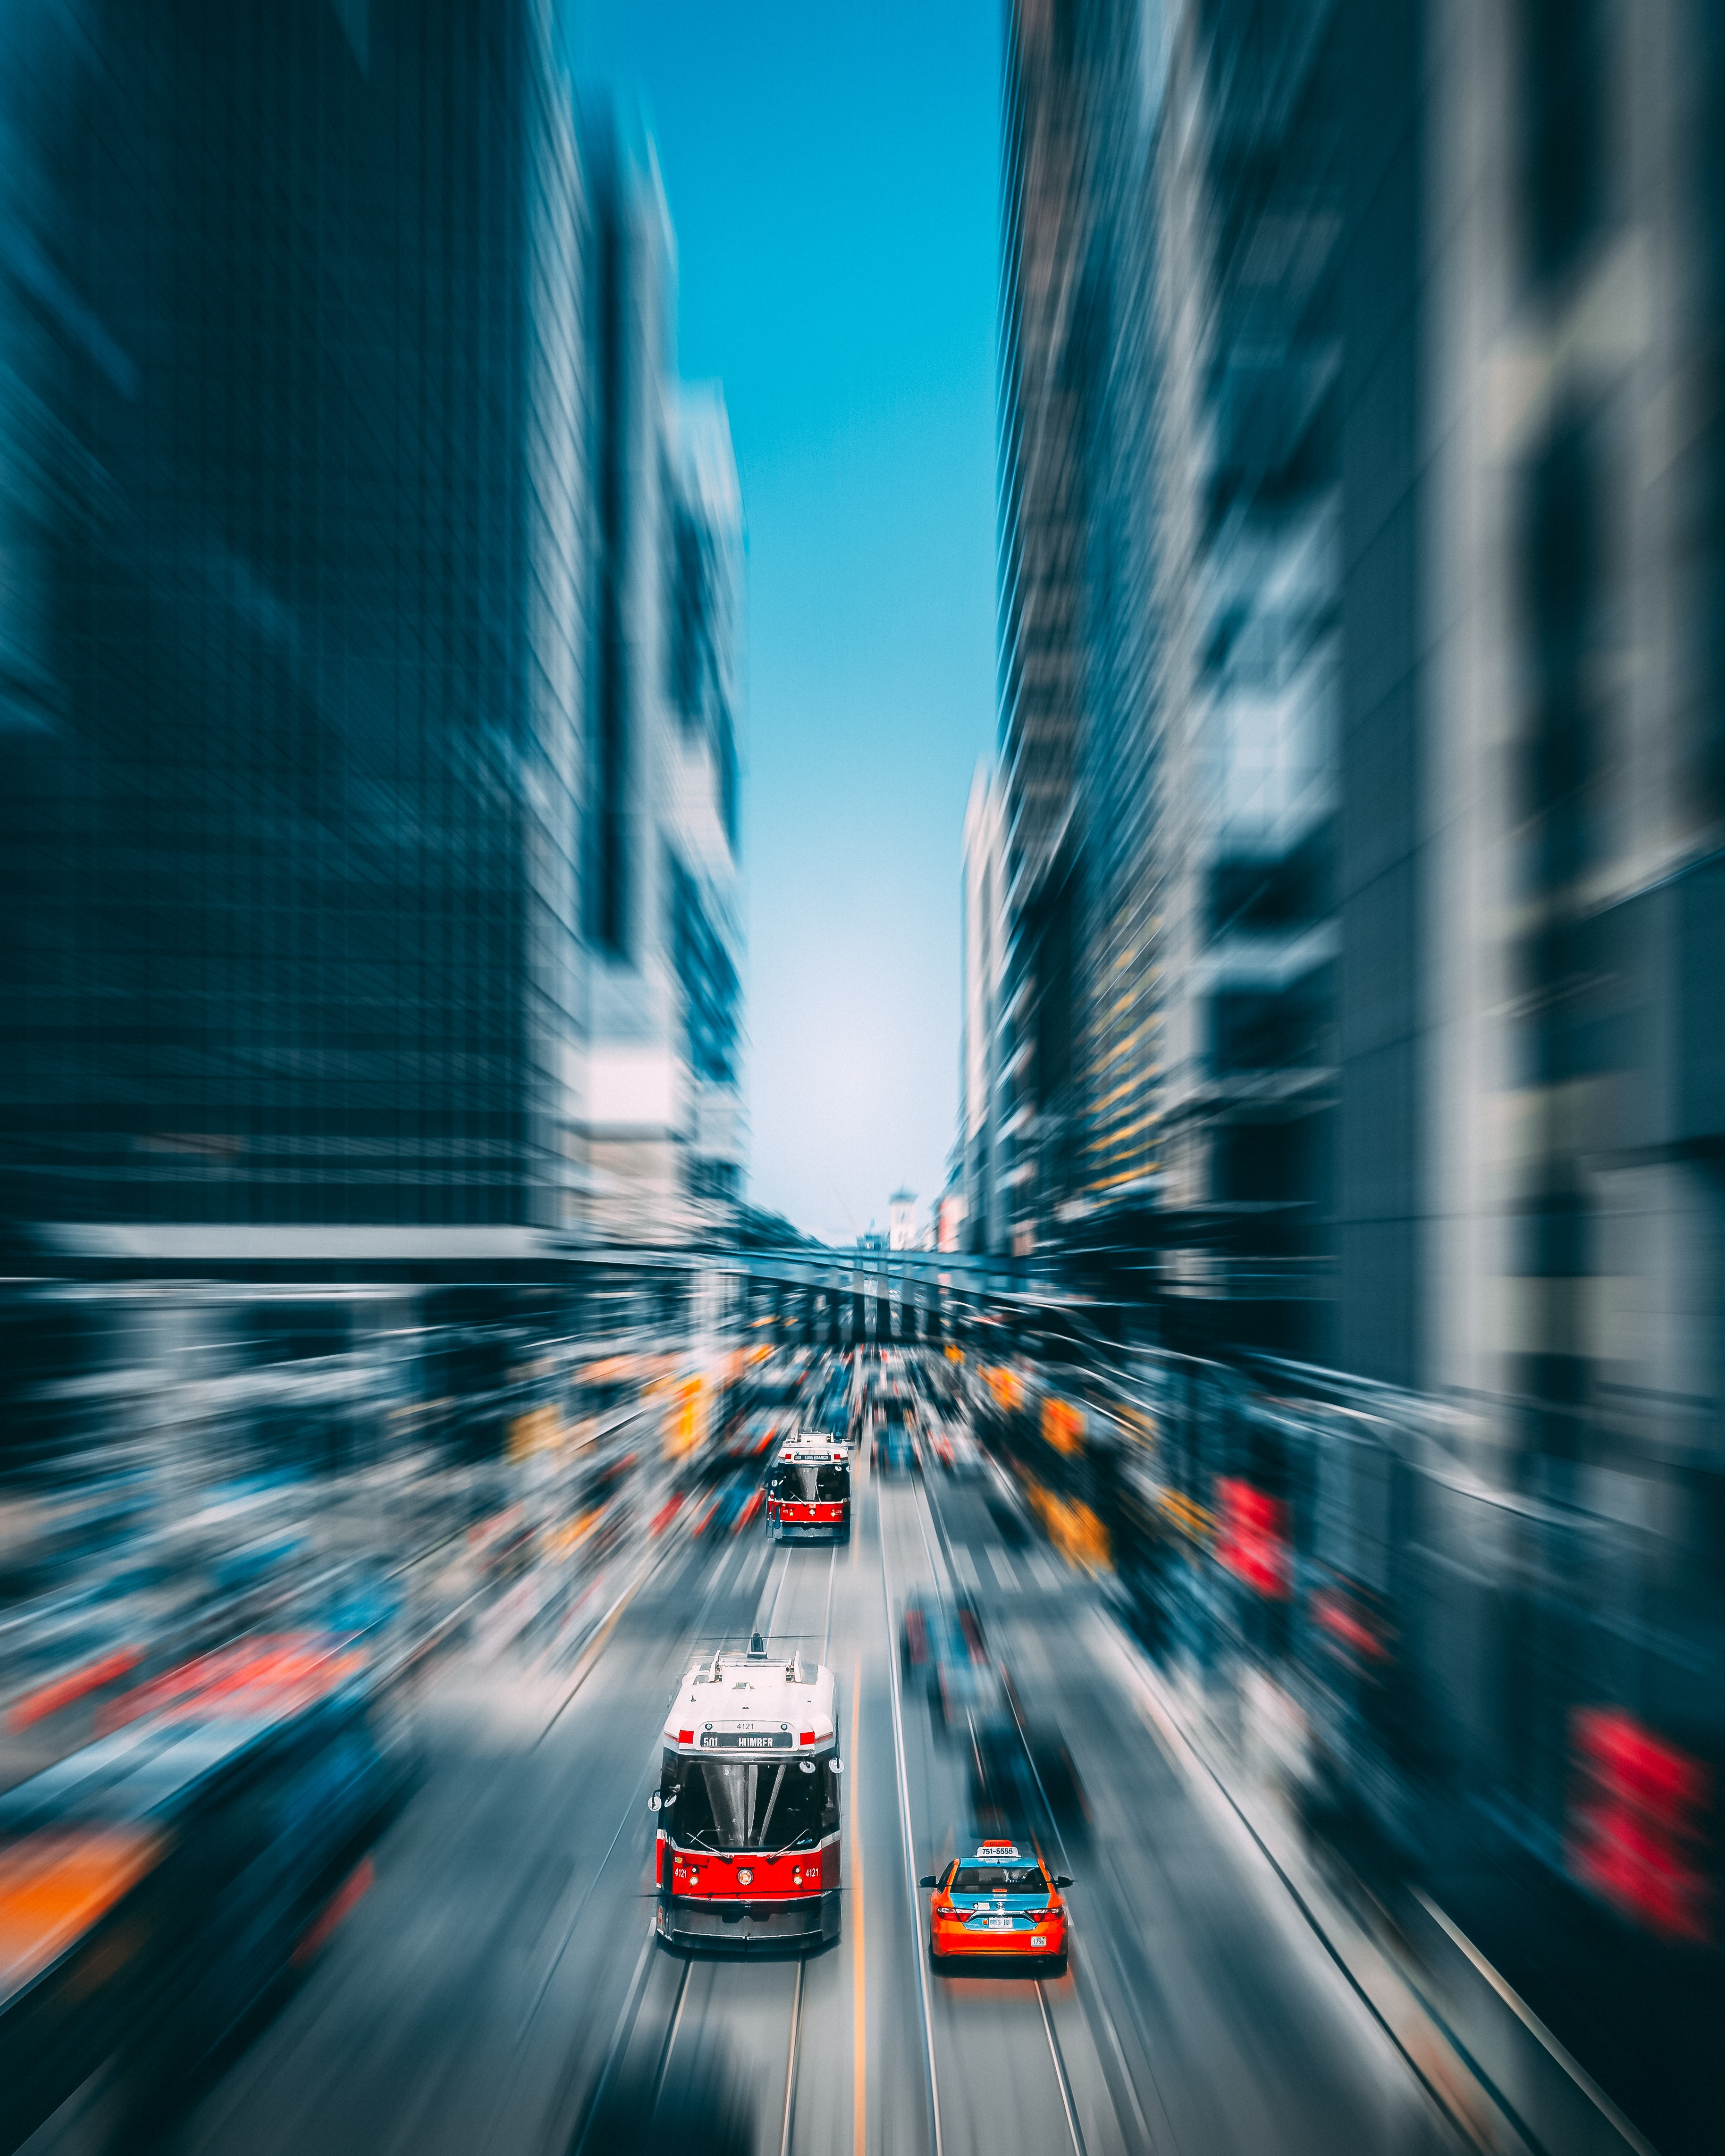 time-lapse photography of vehicles in busy road